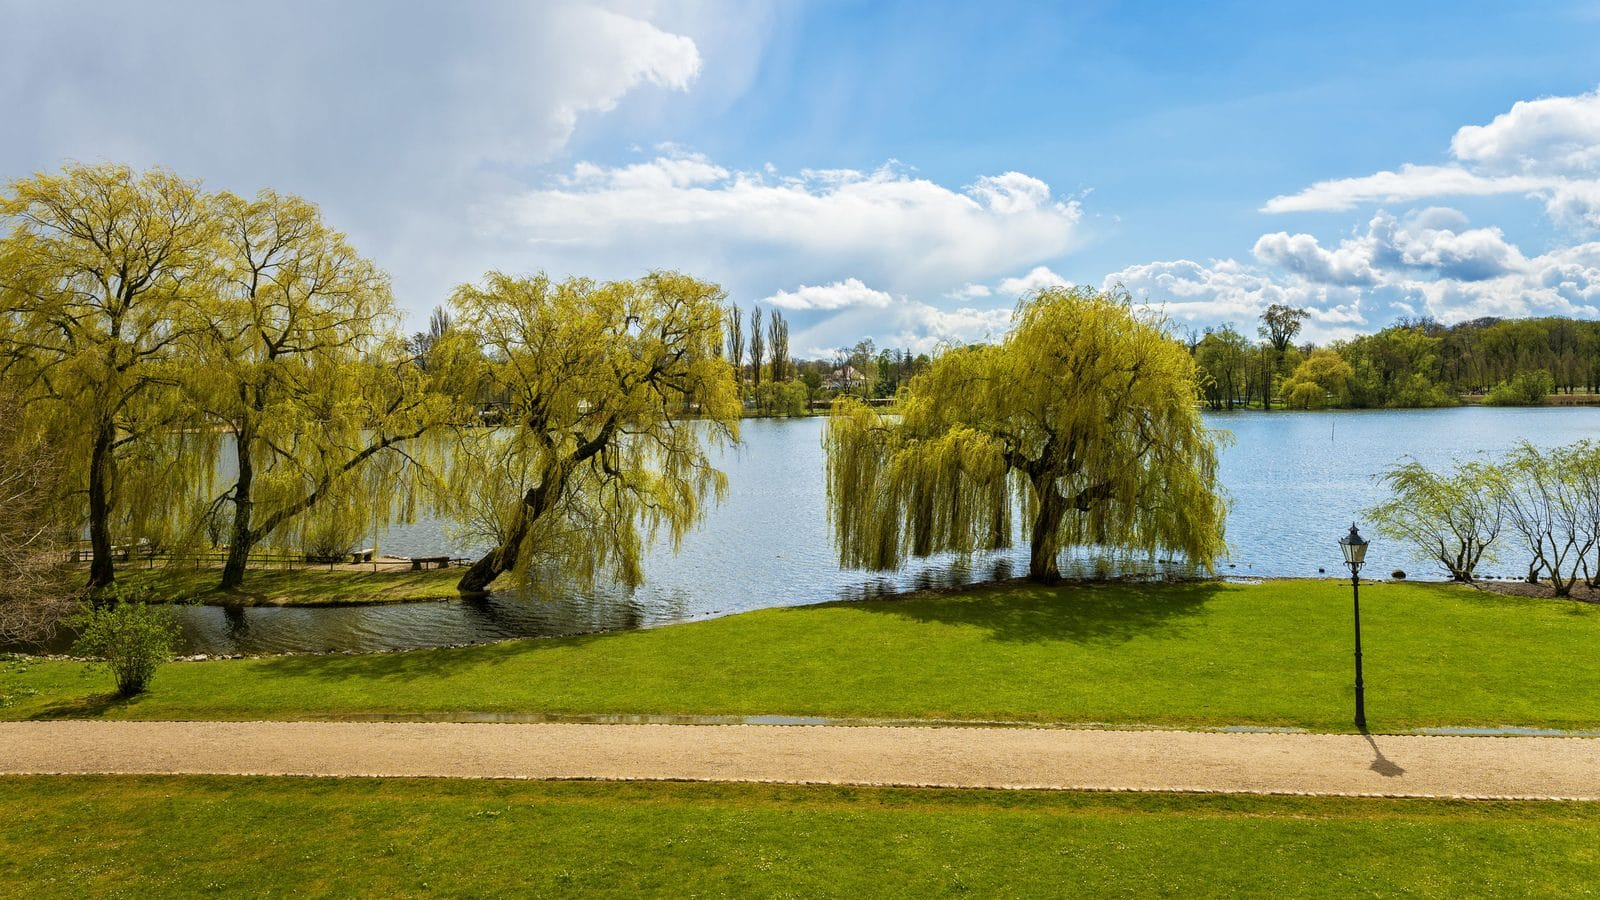 Tree of the month: Golden Weeping Willow